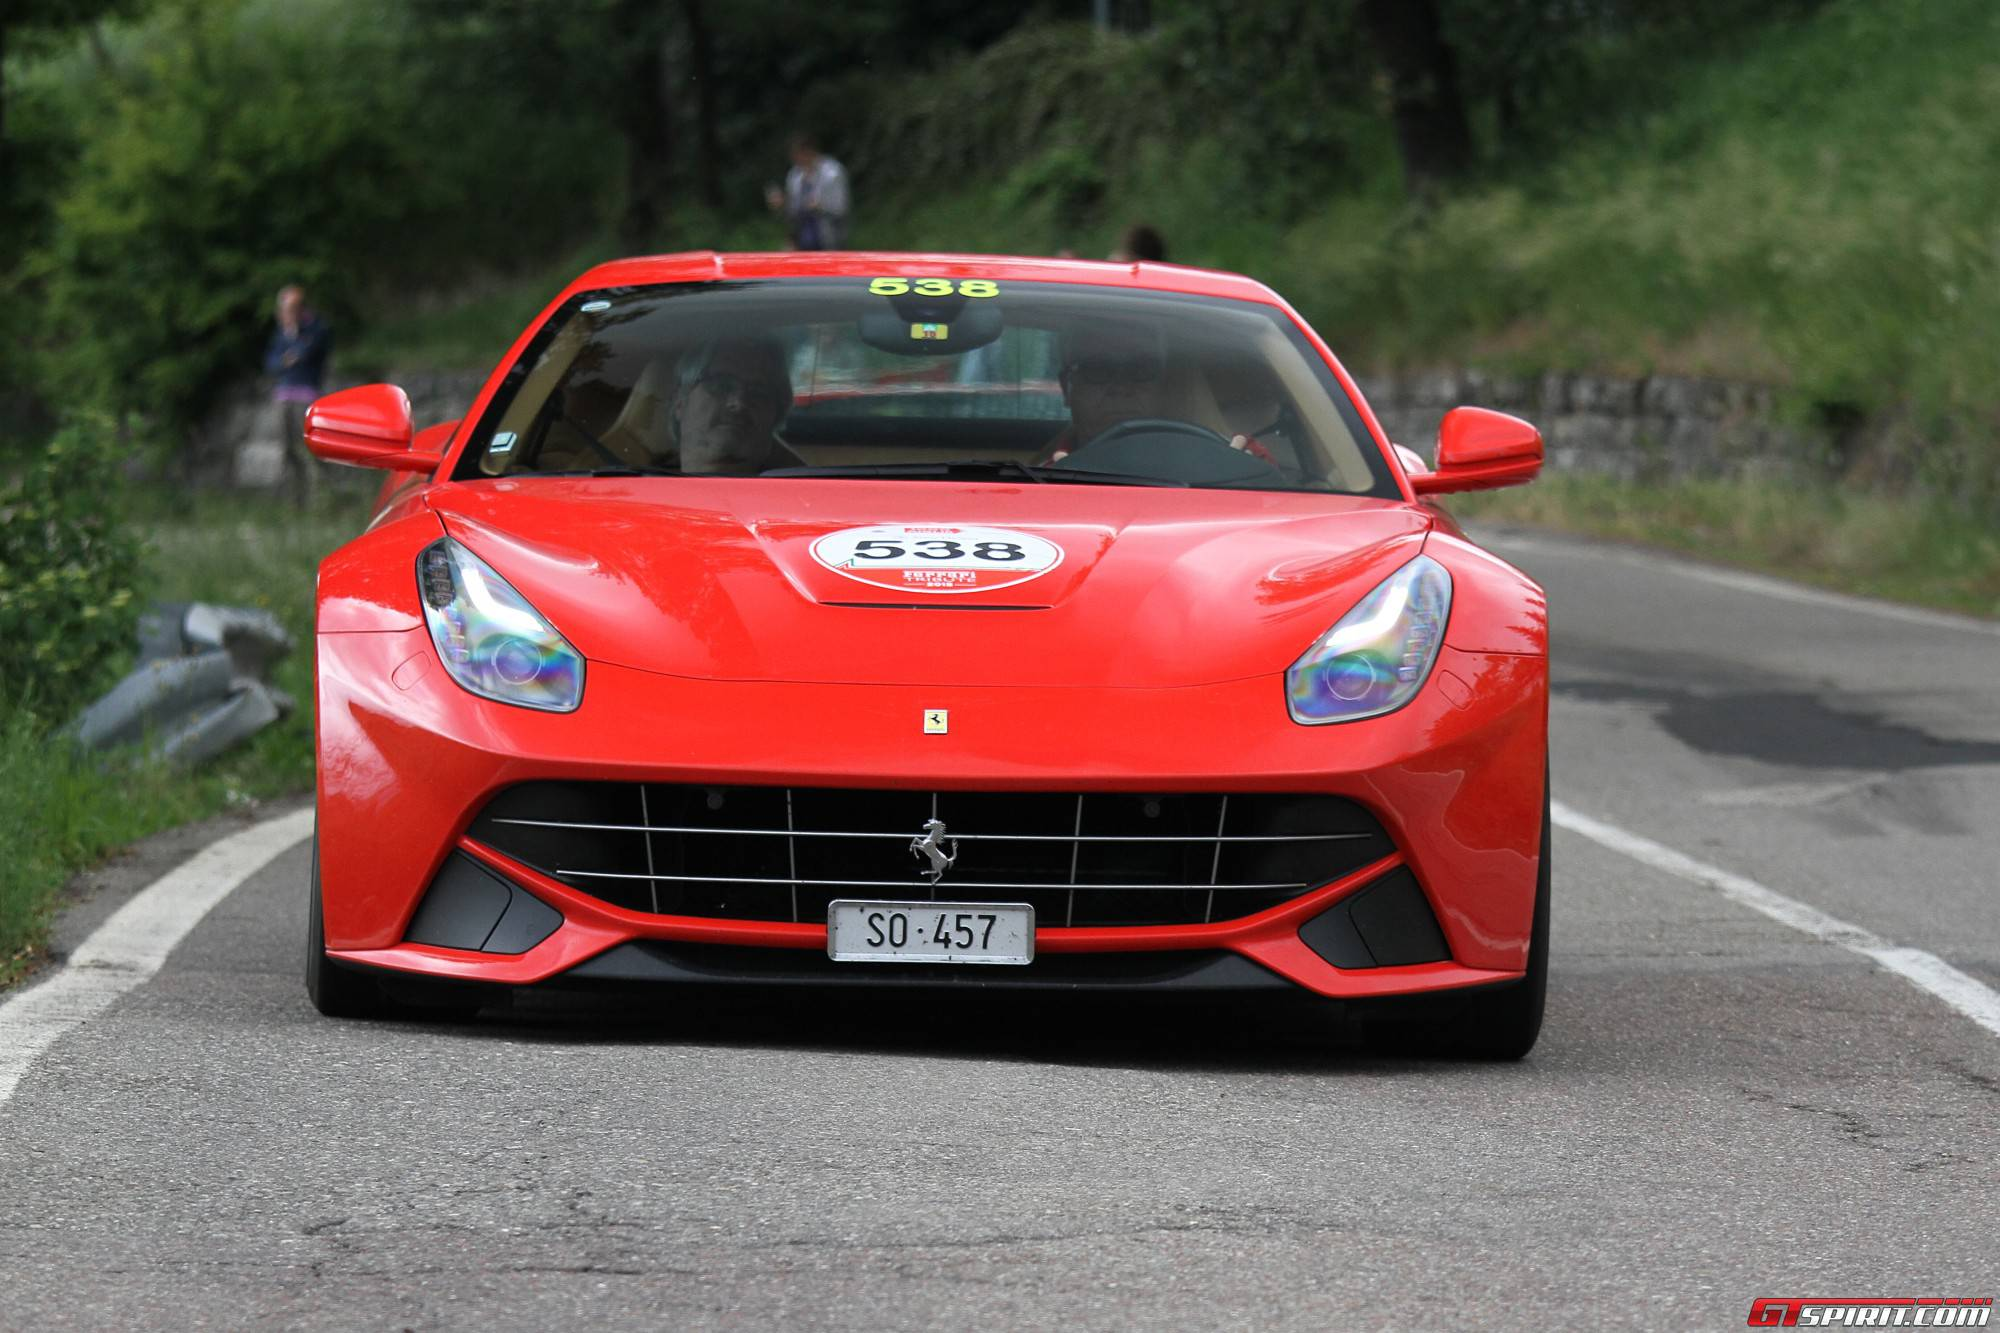 Ferrari Mercedes Selling Cars With Faulty Takata Airbags